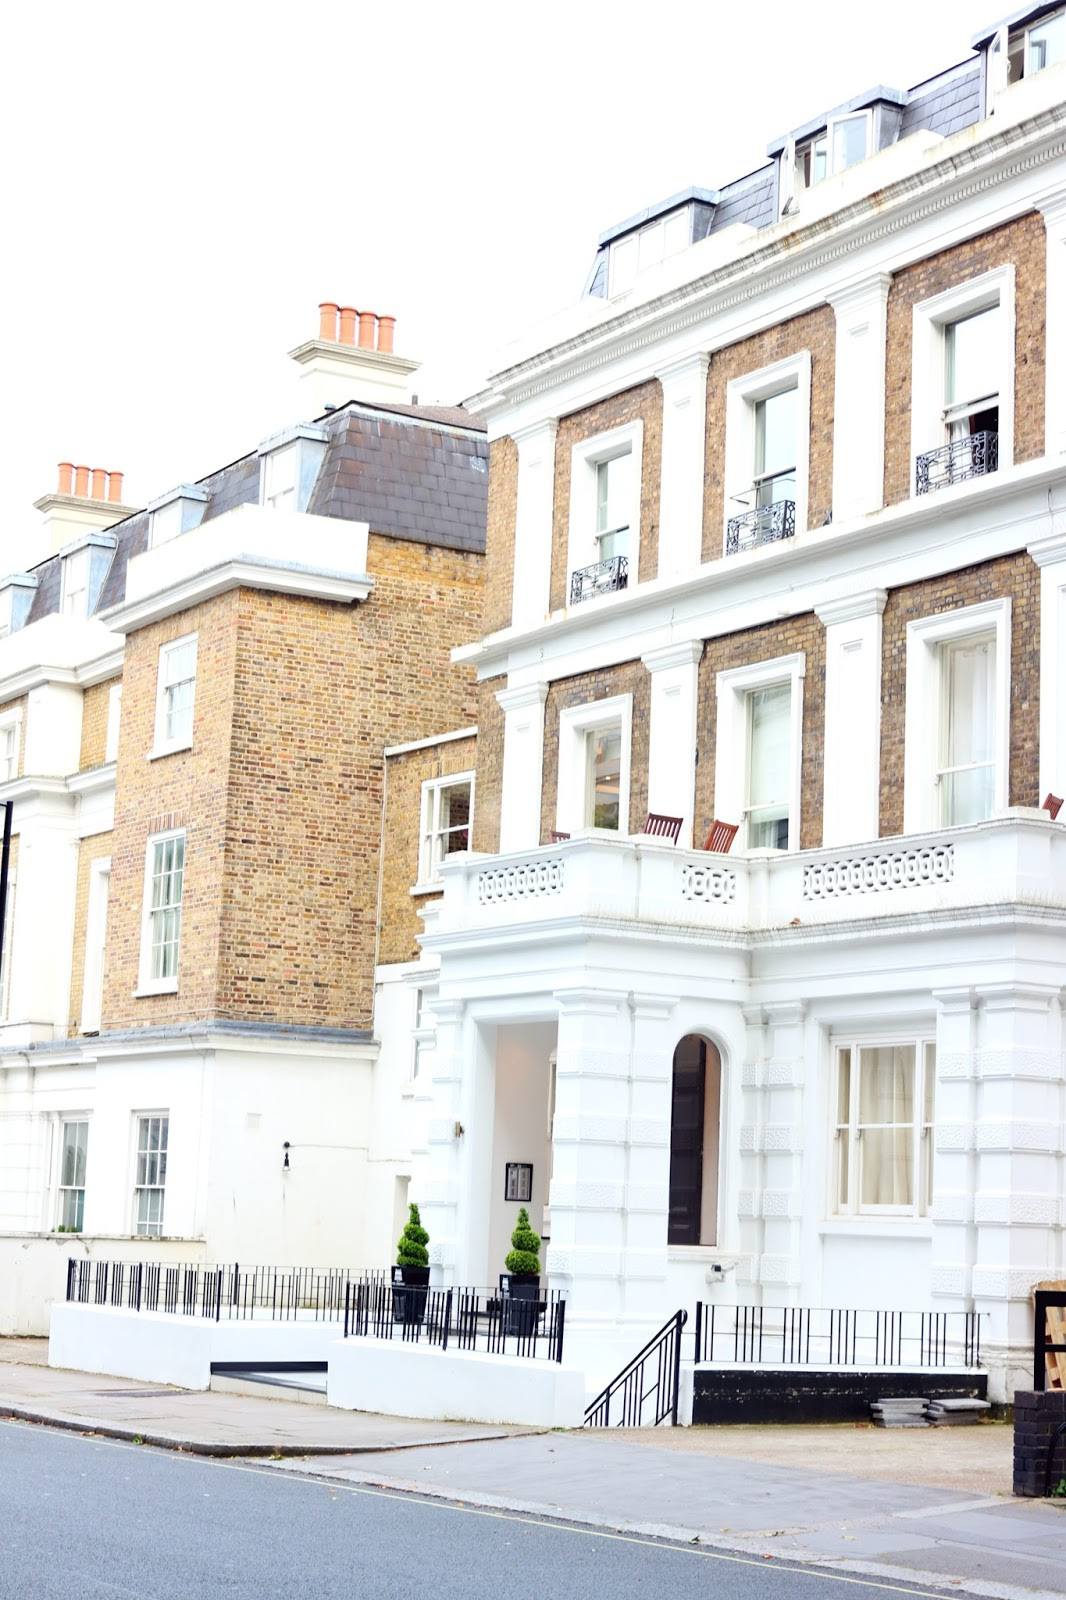 Bayswater, London